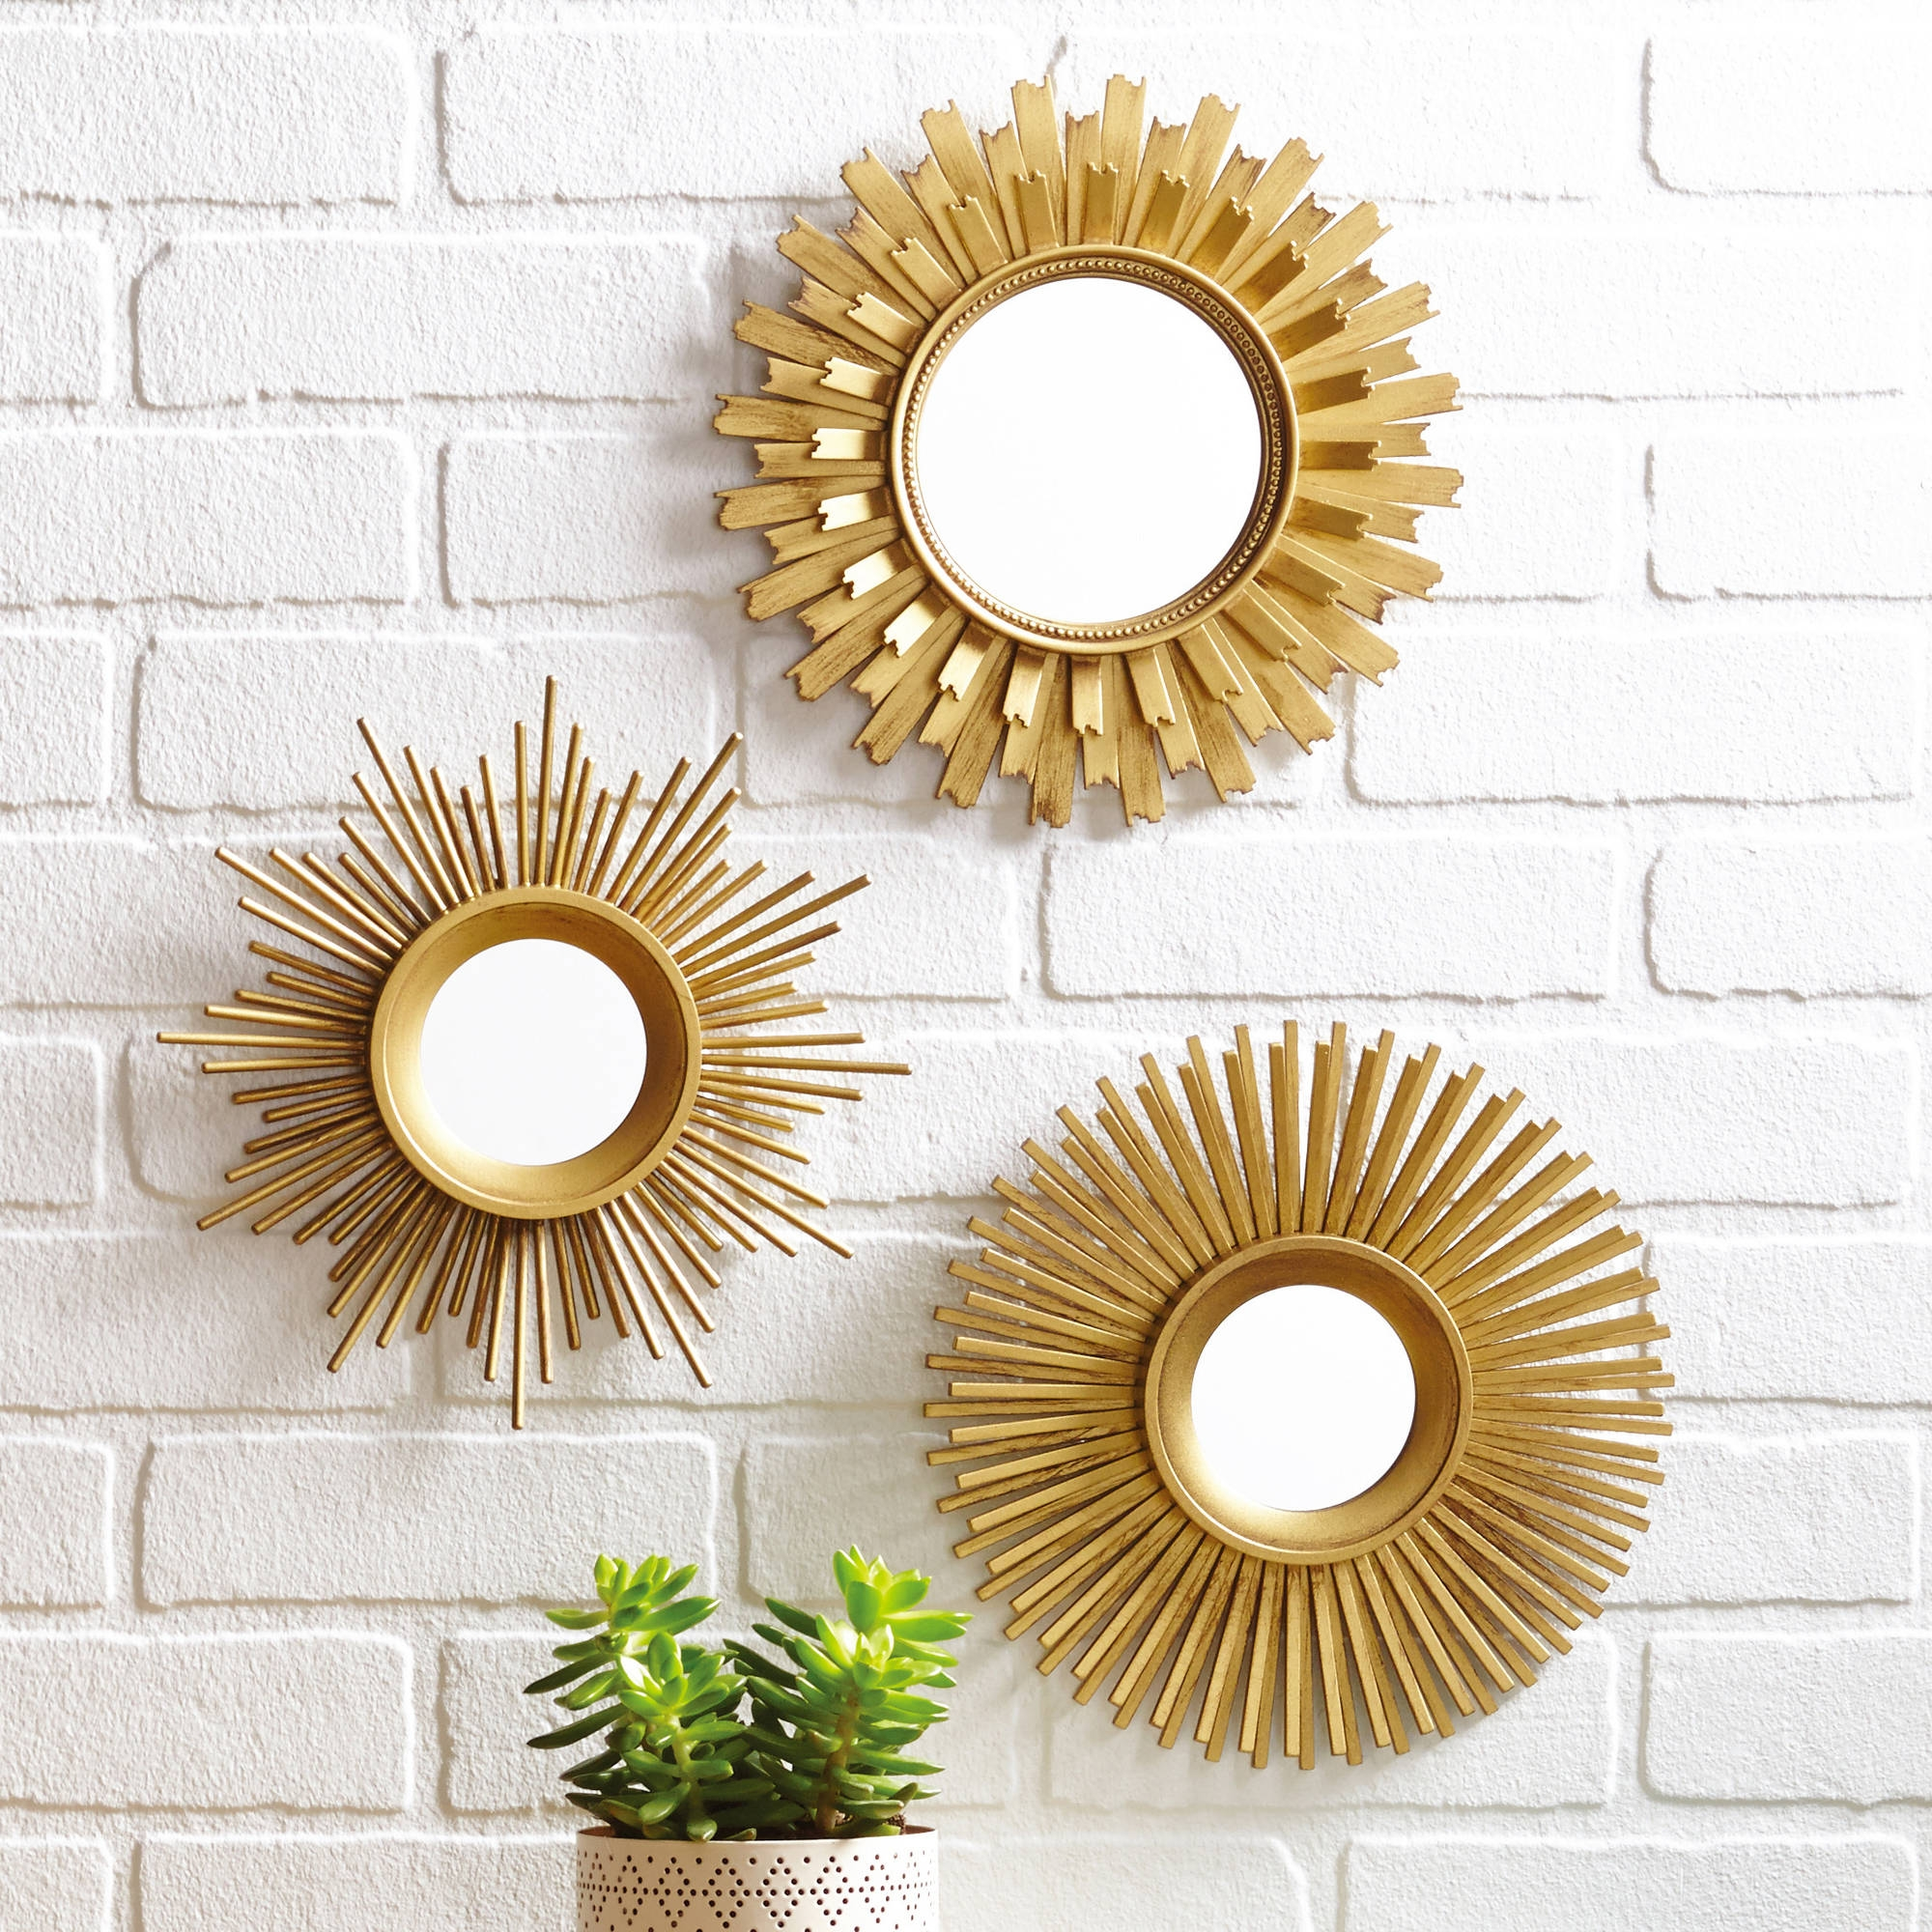 Permalink to Sunburst Wall Mirror Set